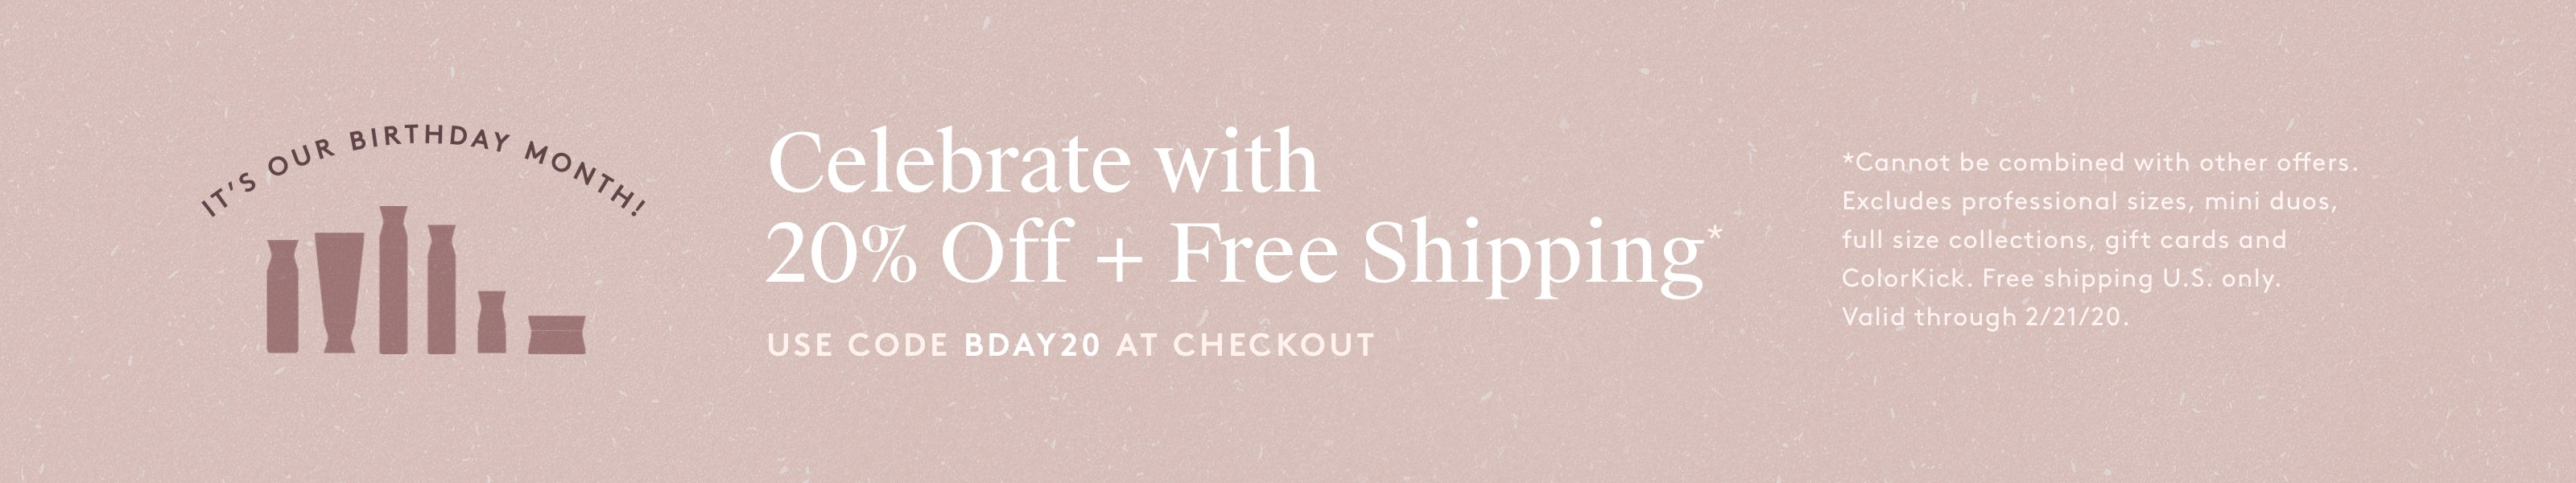 Celebrate with 20% Off + Free Shipping